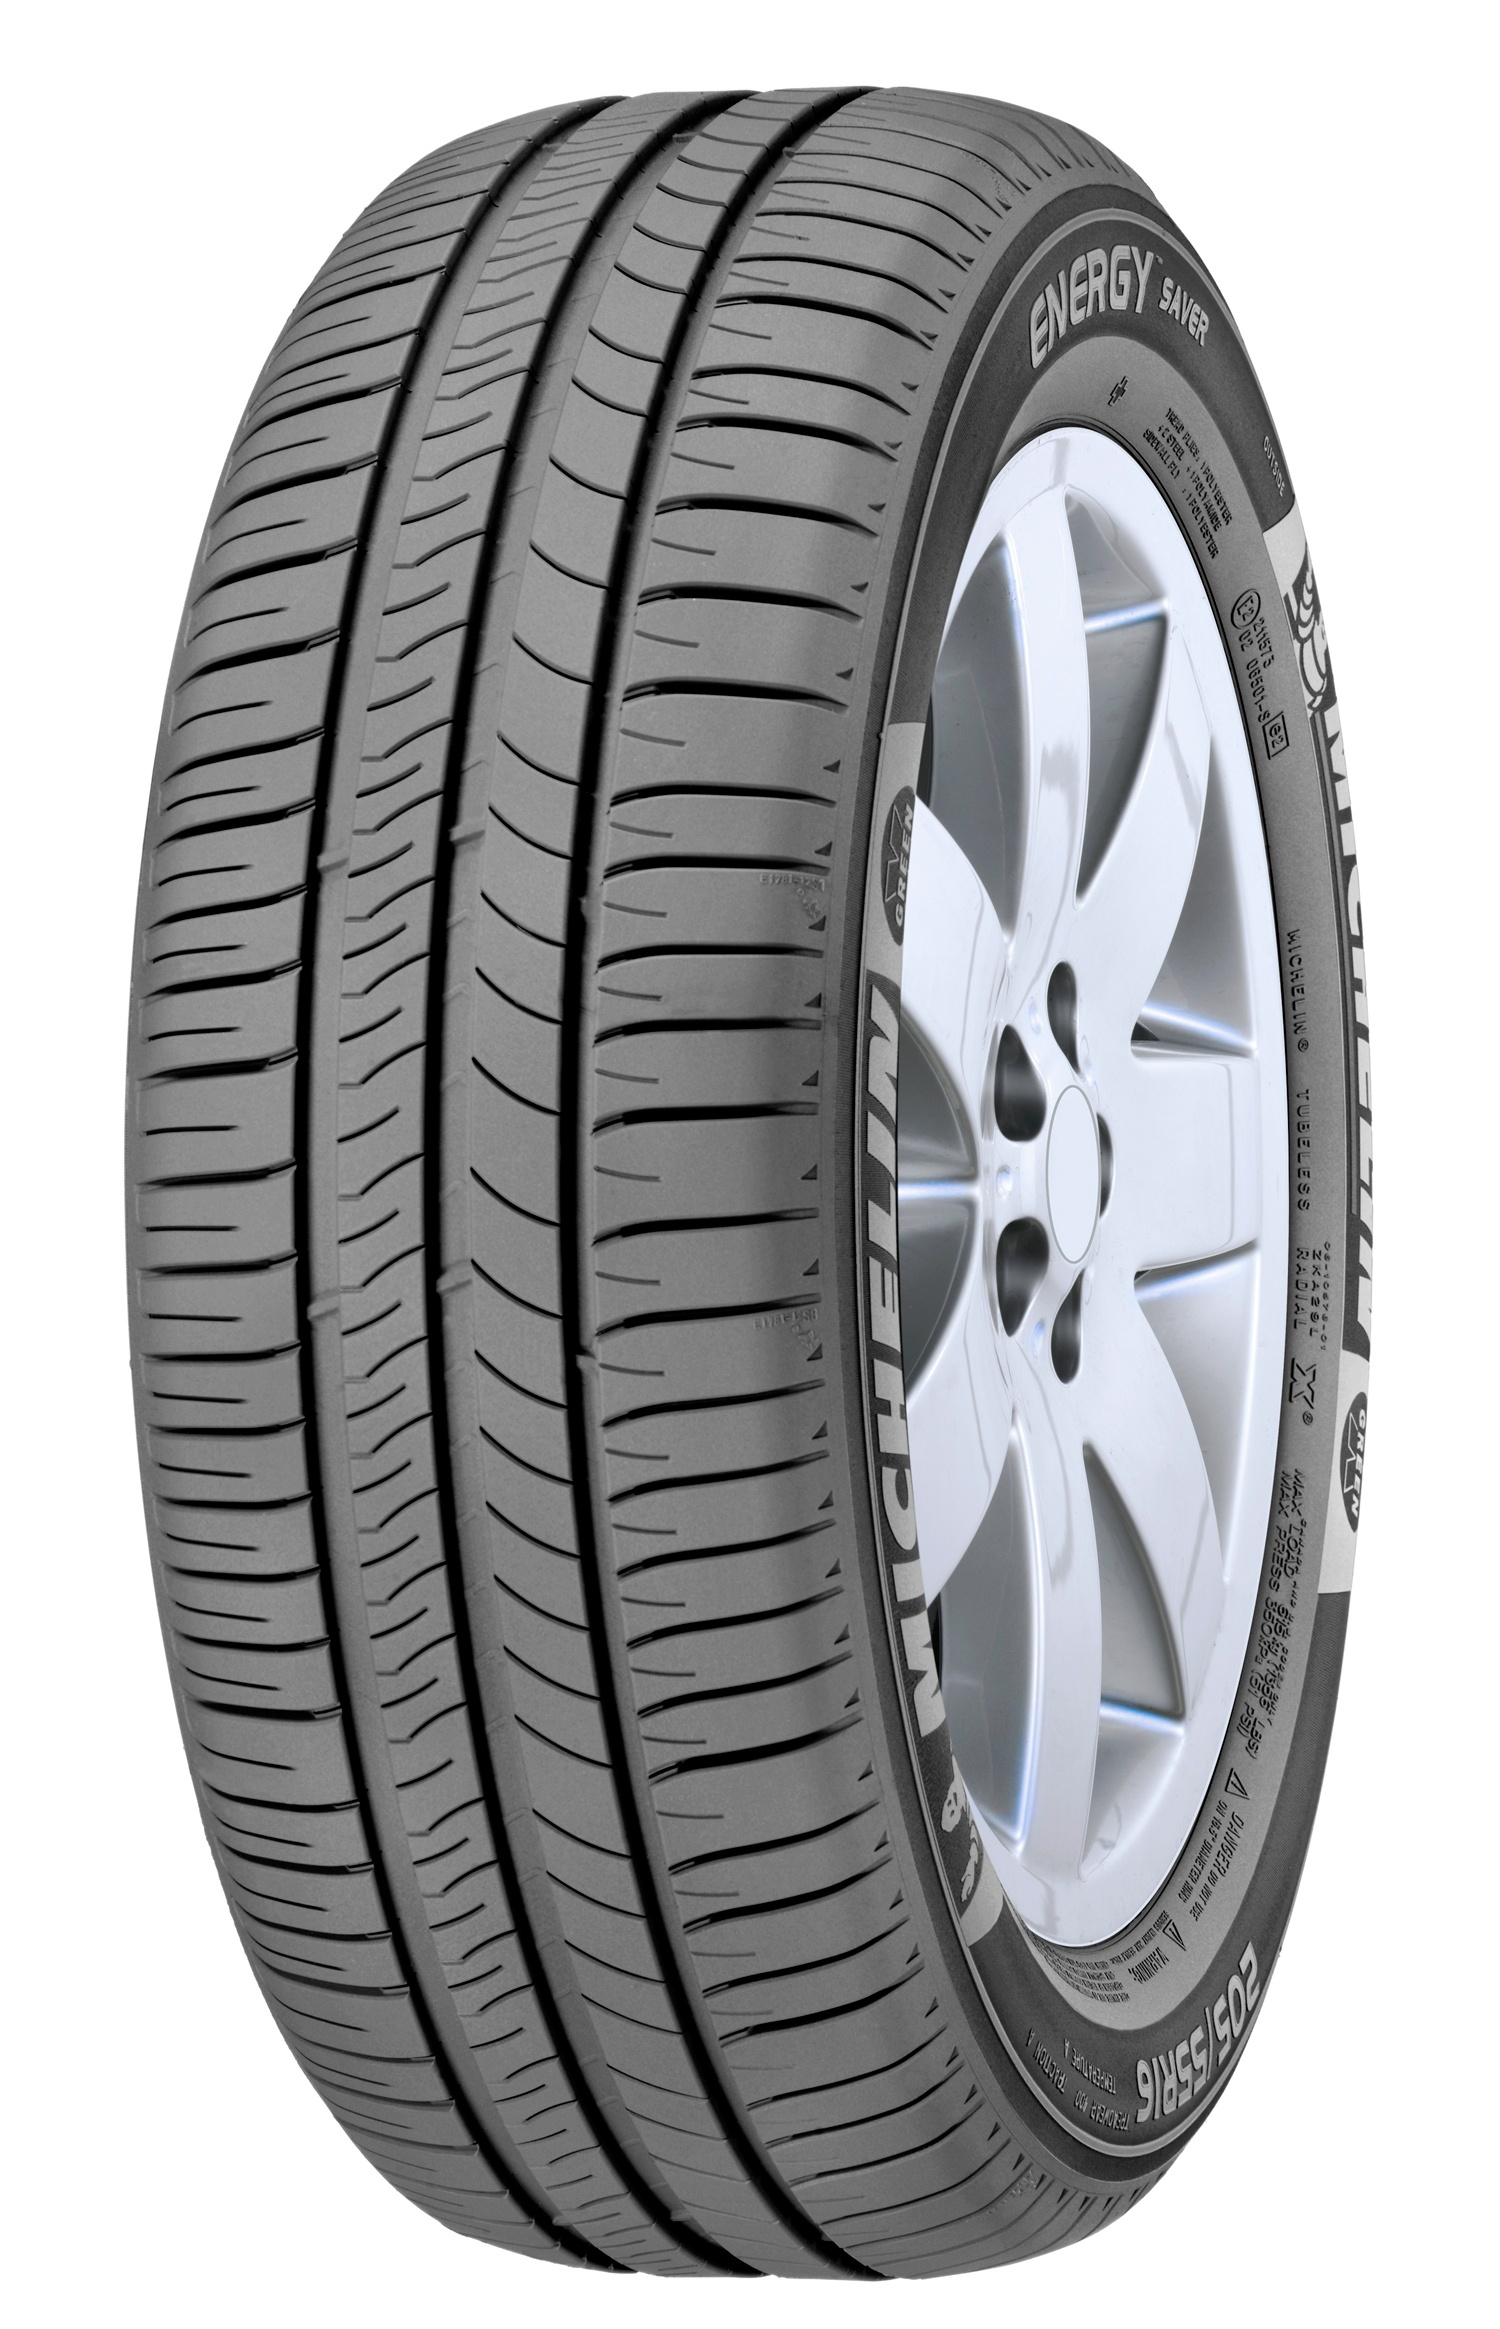 205/60 R16 Michelin Energy Saver Plus 96V XL